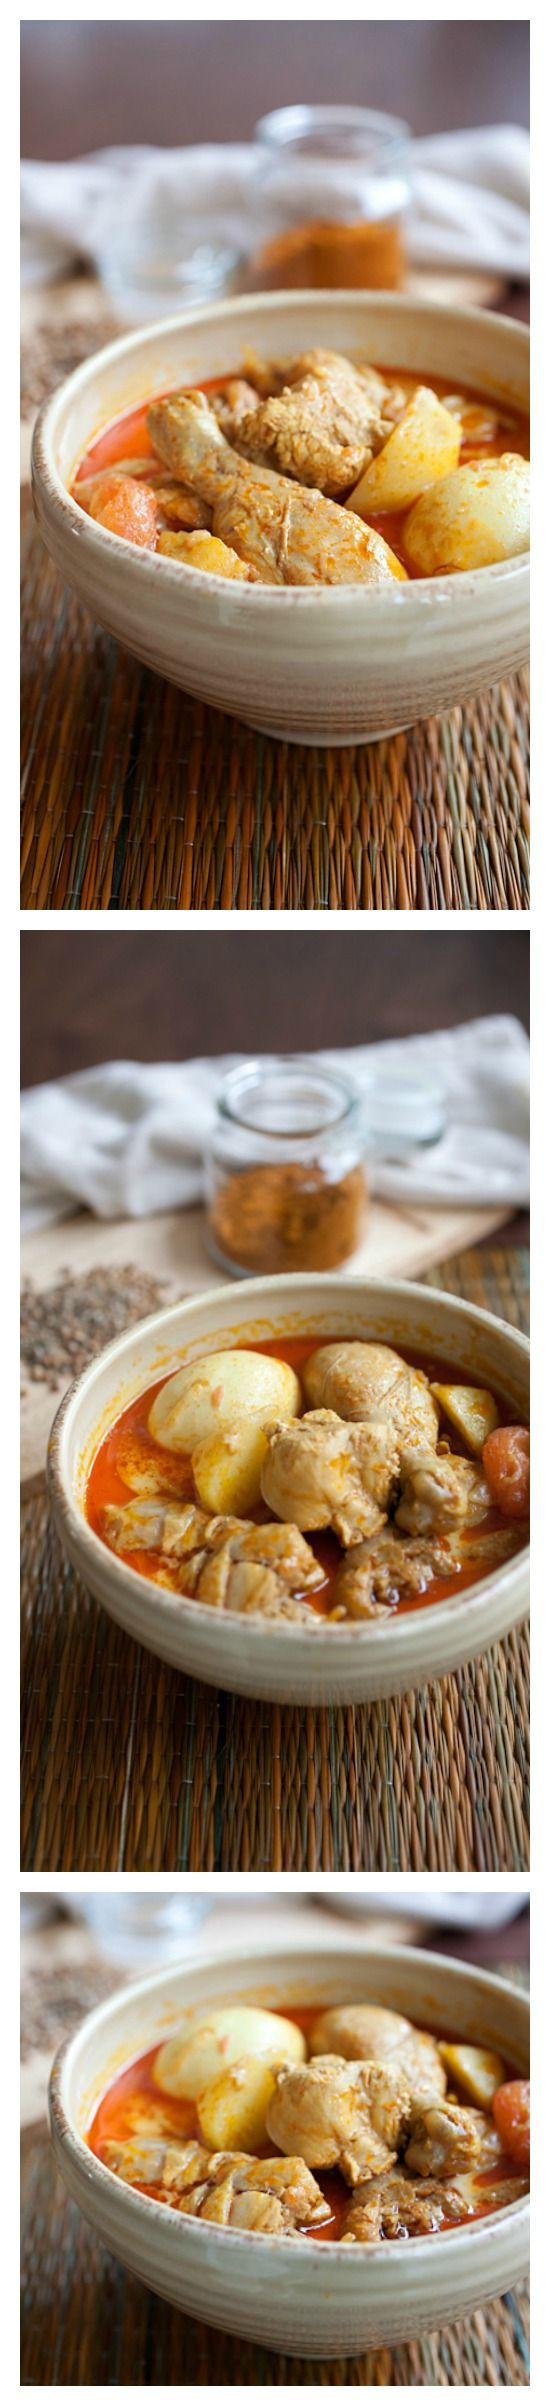 Easy Chicken Curry Recipe. DELICIOUS and can be made with easy-to-get ingredients at regular stores. Once you try this curry, you will want more | http://rasamalaysia.com